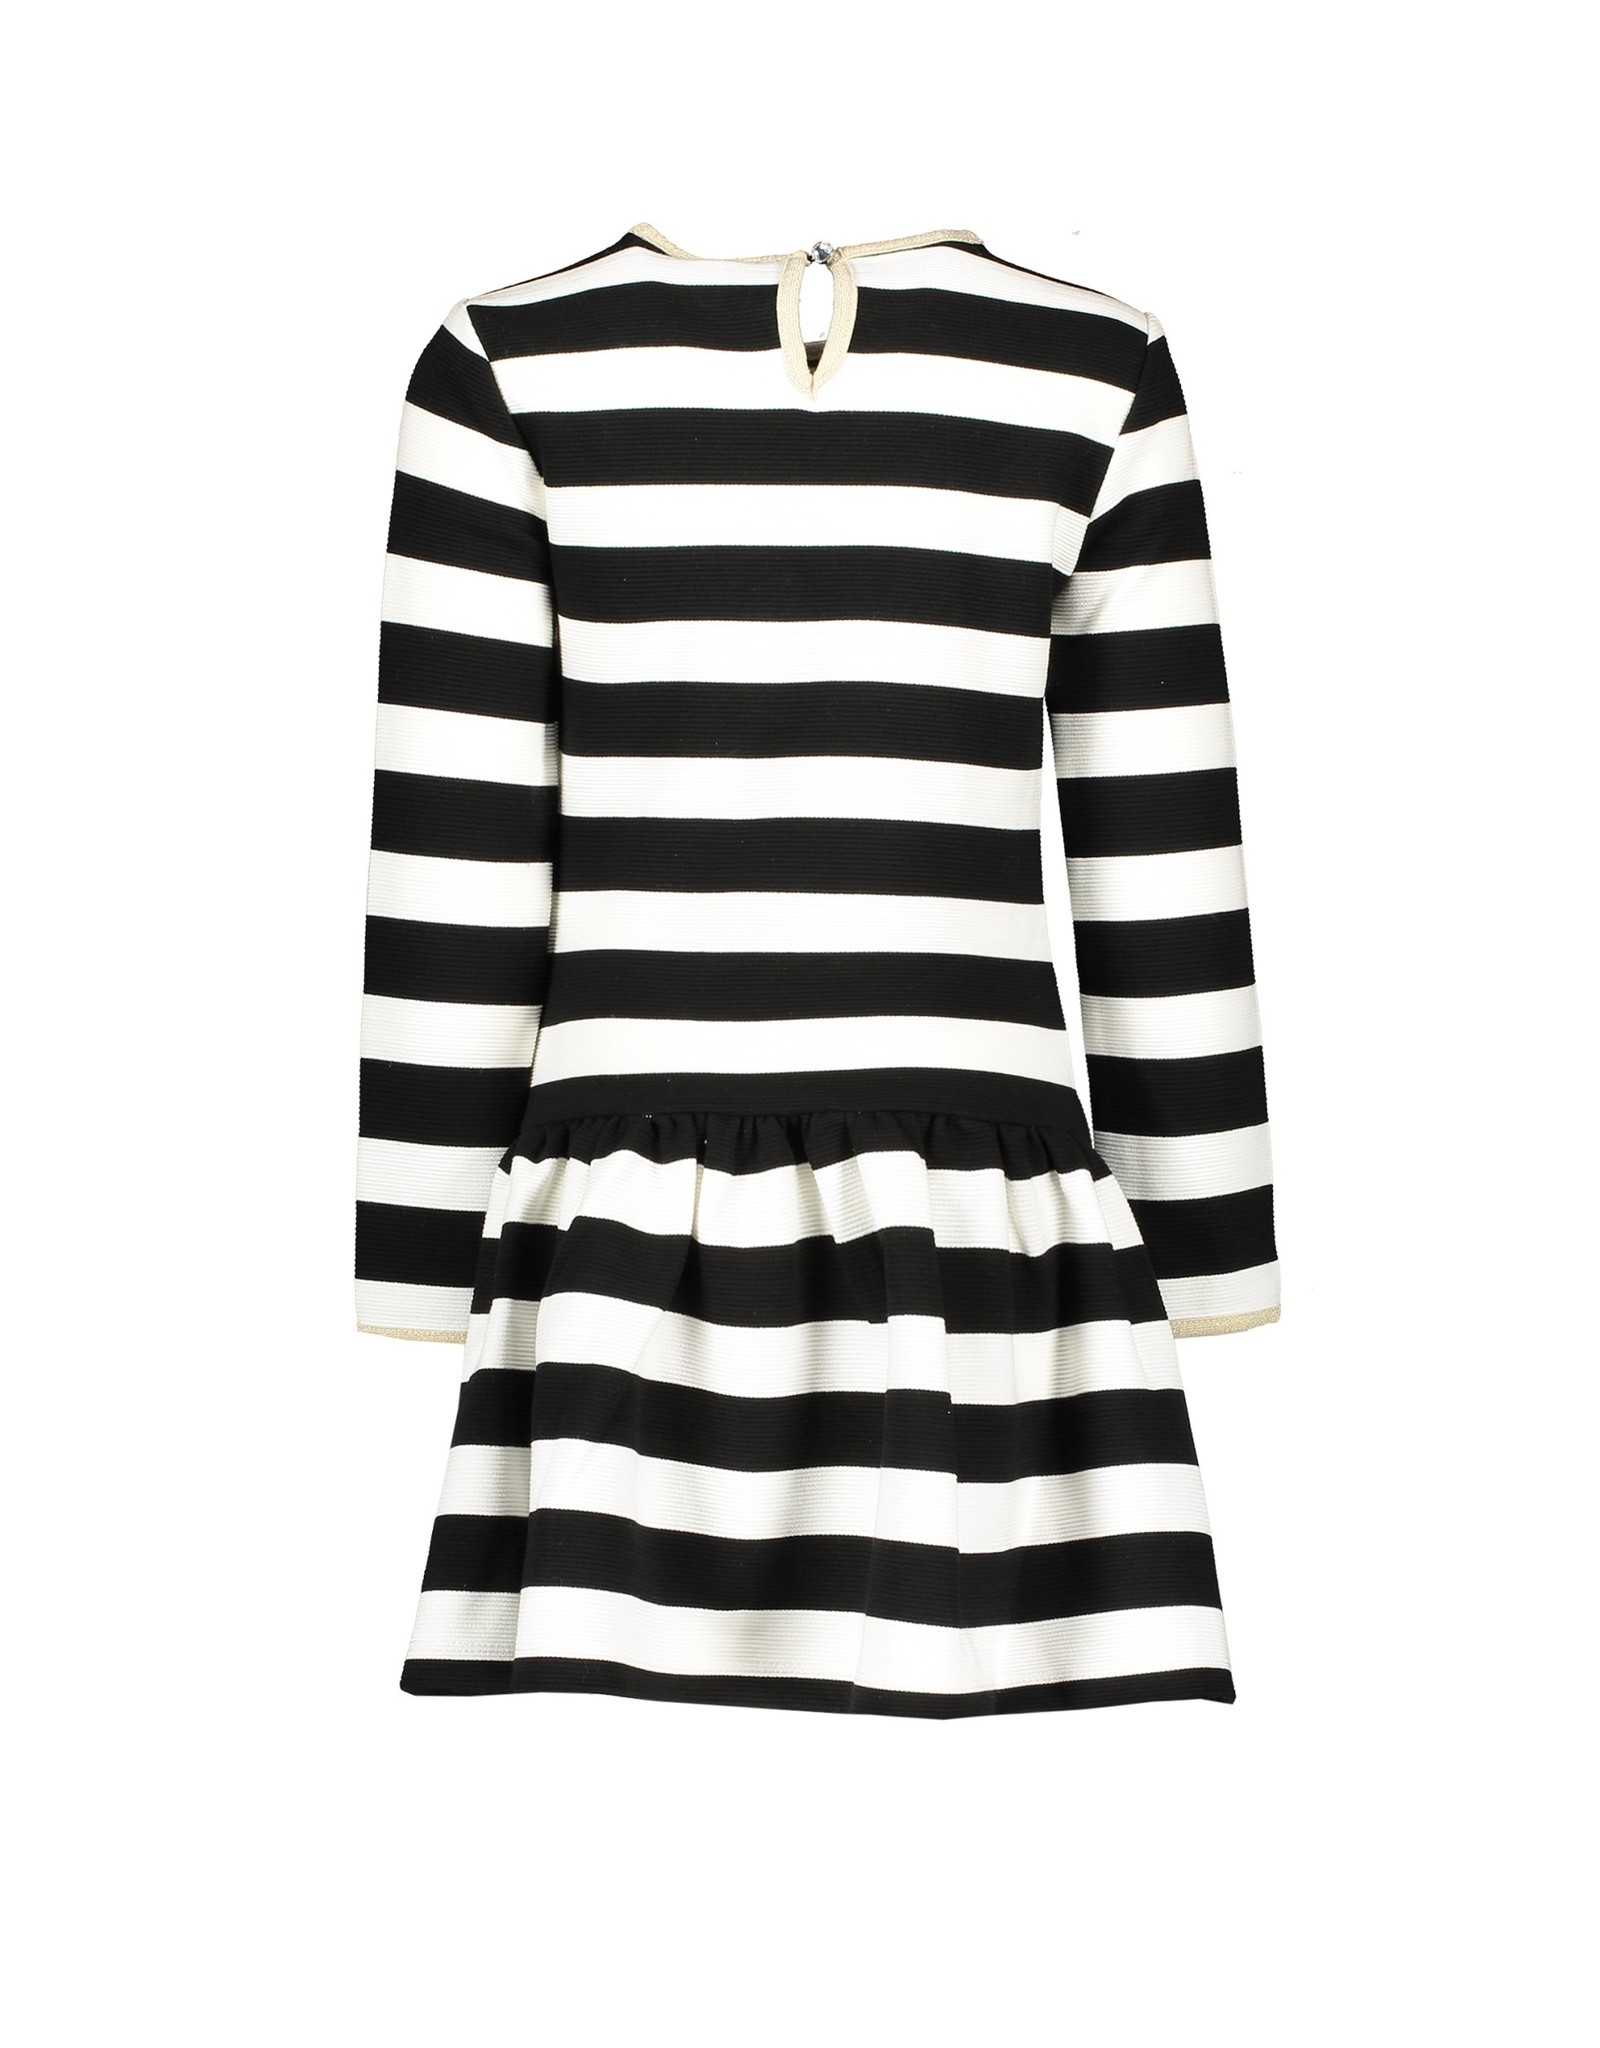 Le Chic Le Chic dress relief stripe Black